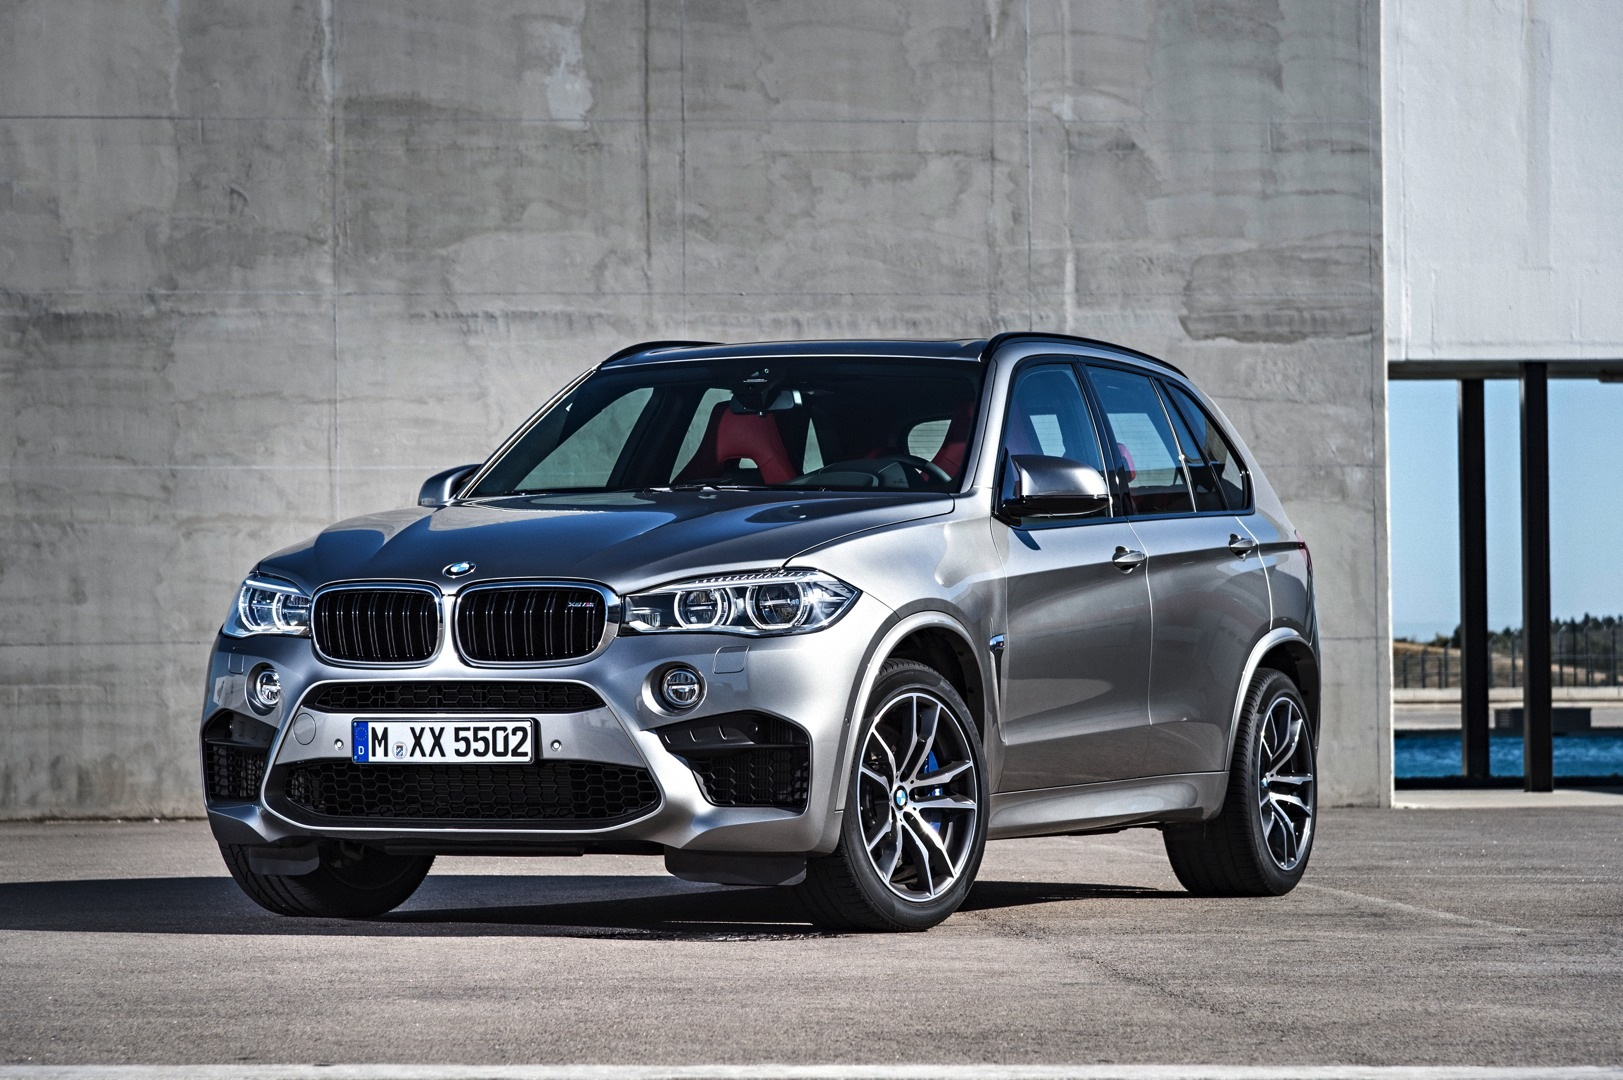 2015 Bmw X5 M And X6 M Unveiled With 575 Hp And 8 Speed Gearbox